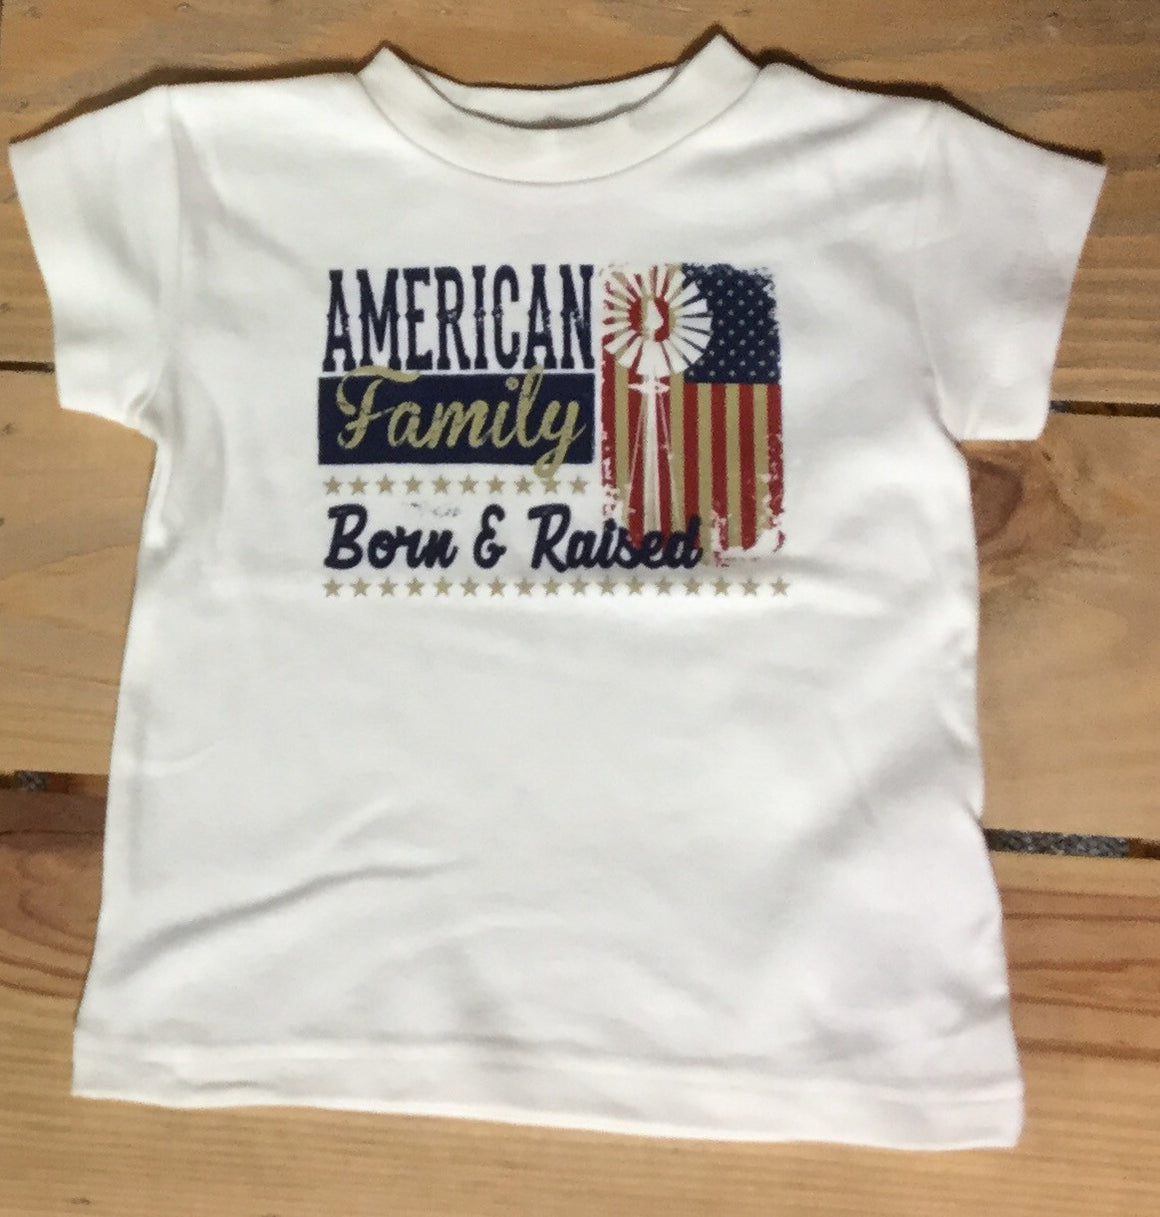 Farm Boy Born & Raised Ivory Infant/Toddler Tee